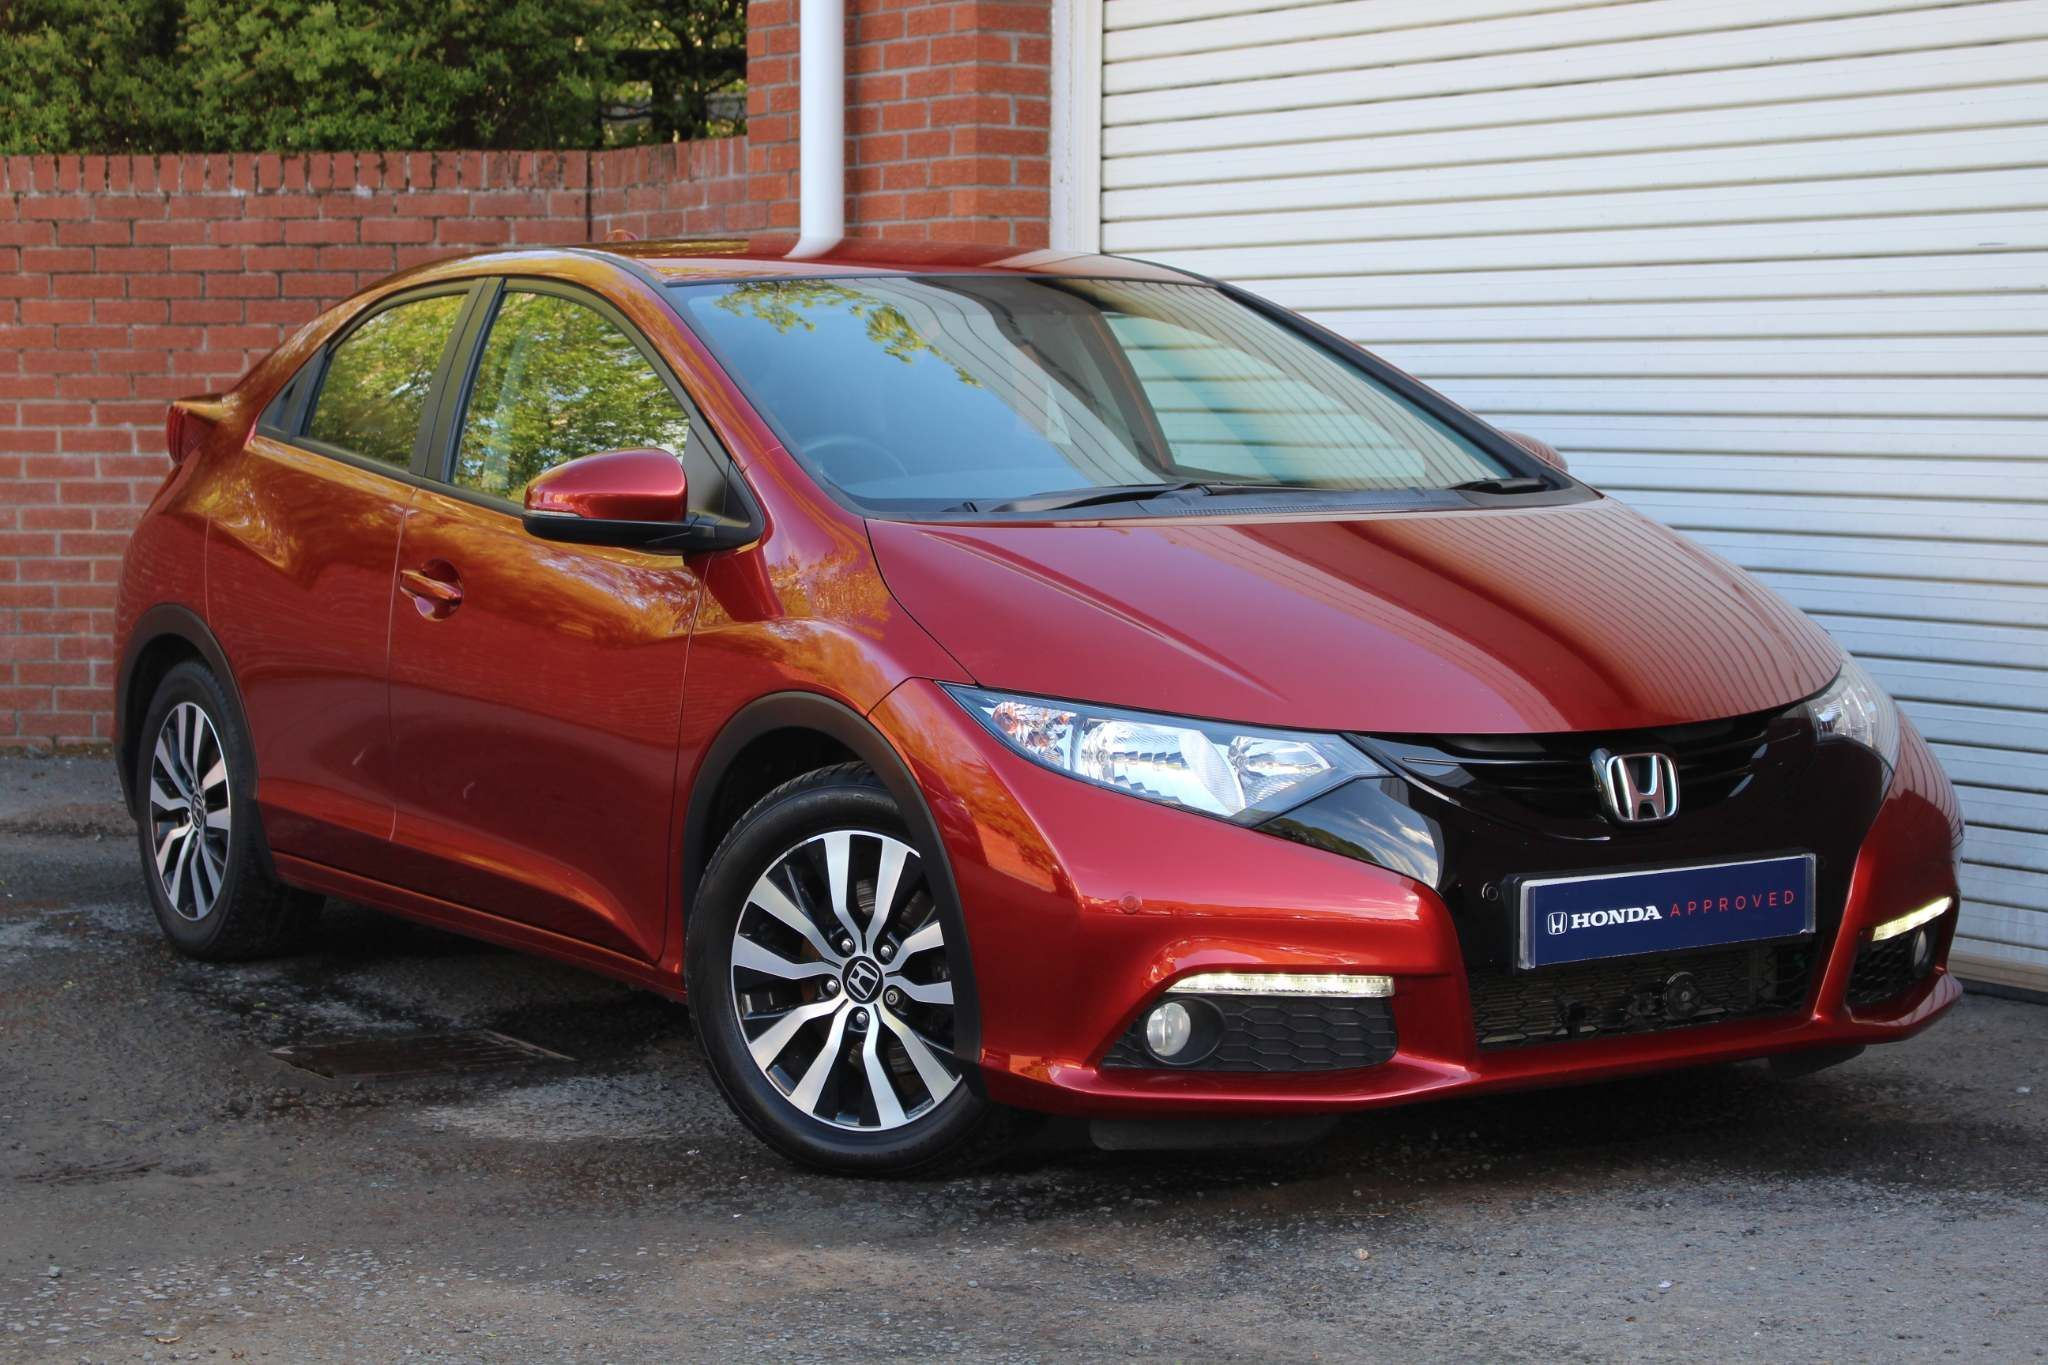 Honda Civic 1.6 i-DTEC SE Plus 5dr (DAB/Premium Audio)